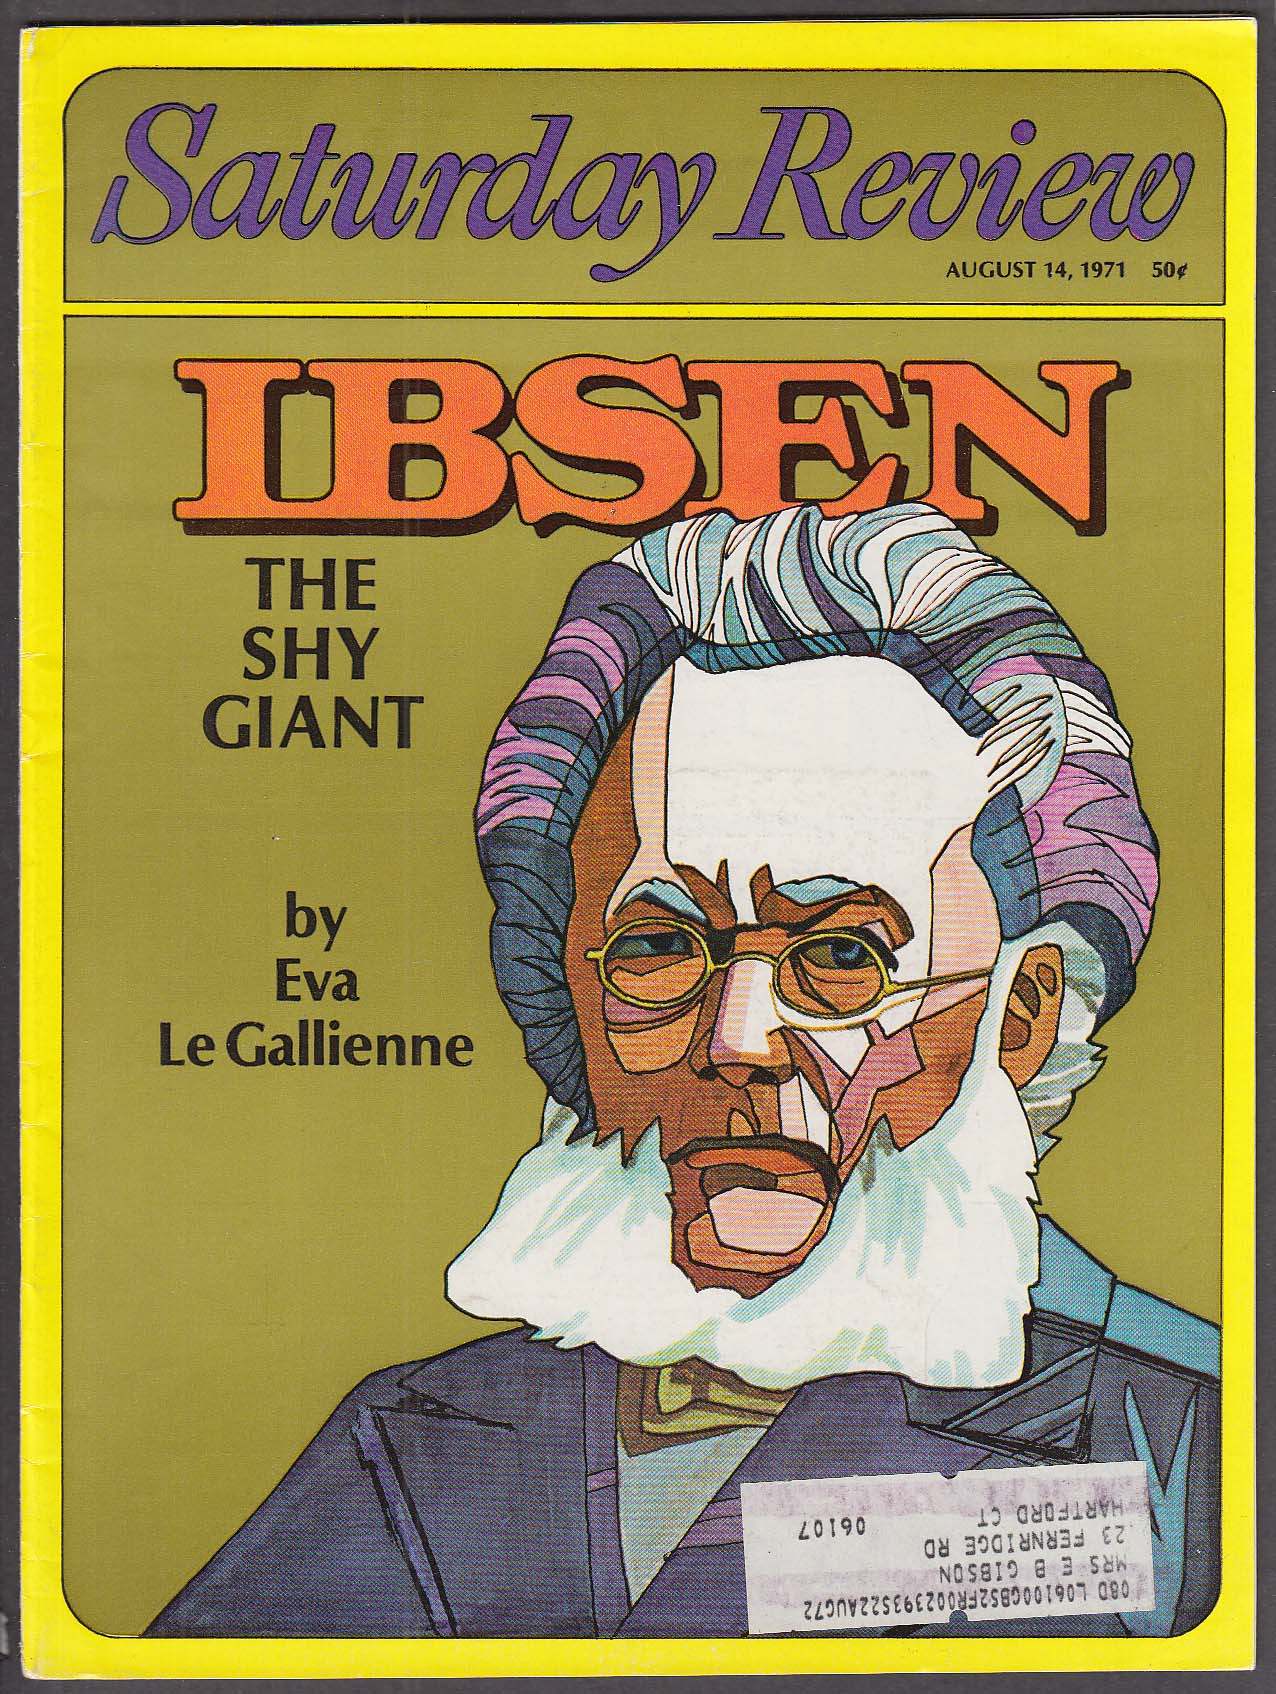 Image for SATURDAY REVIEW Ibsen by Eva Le Gallienne 8/14 1971